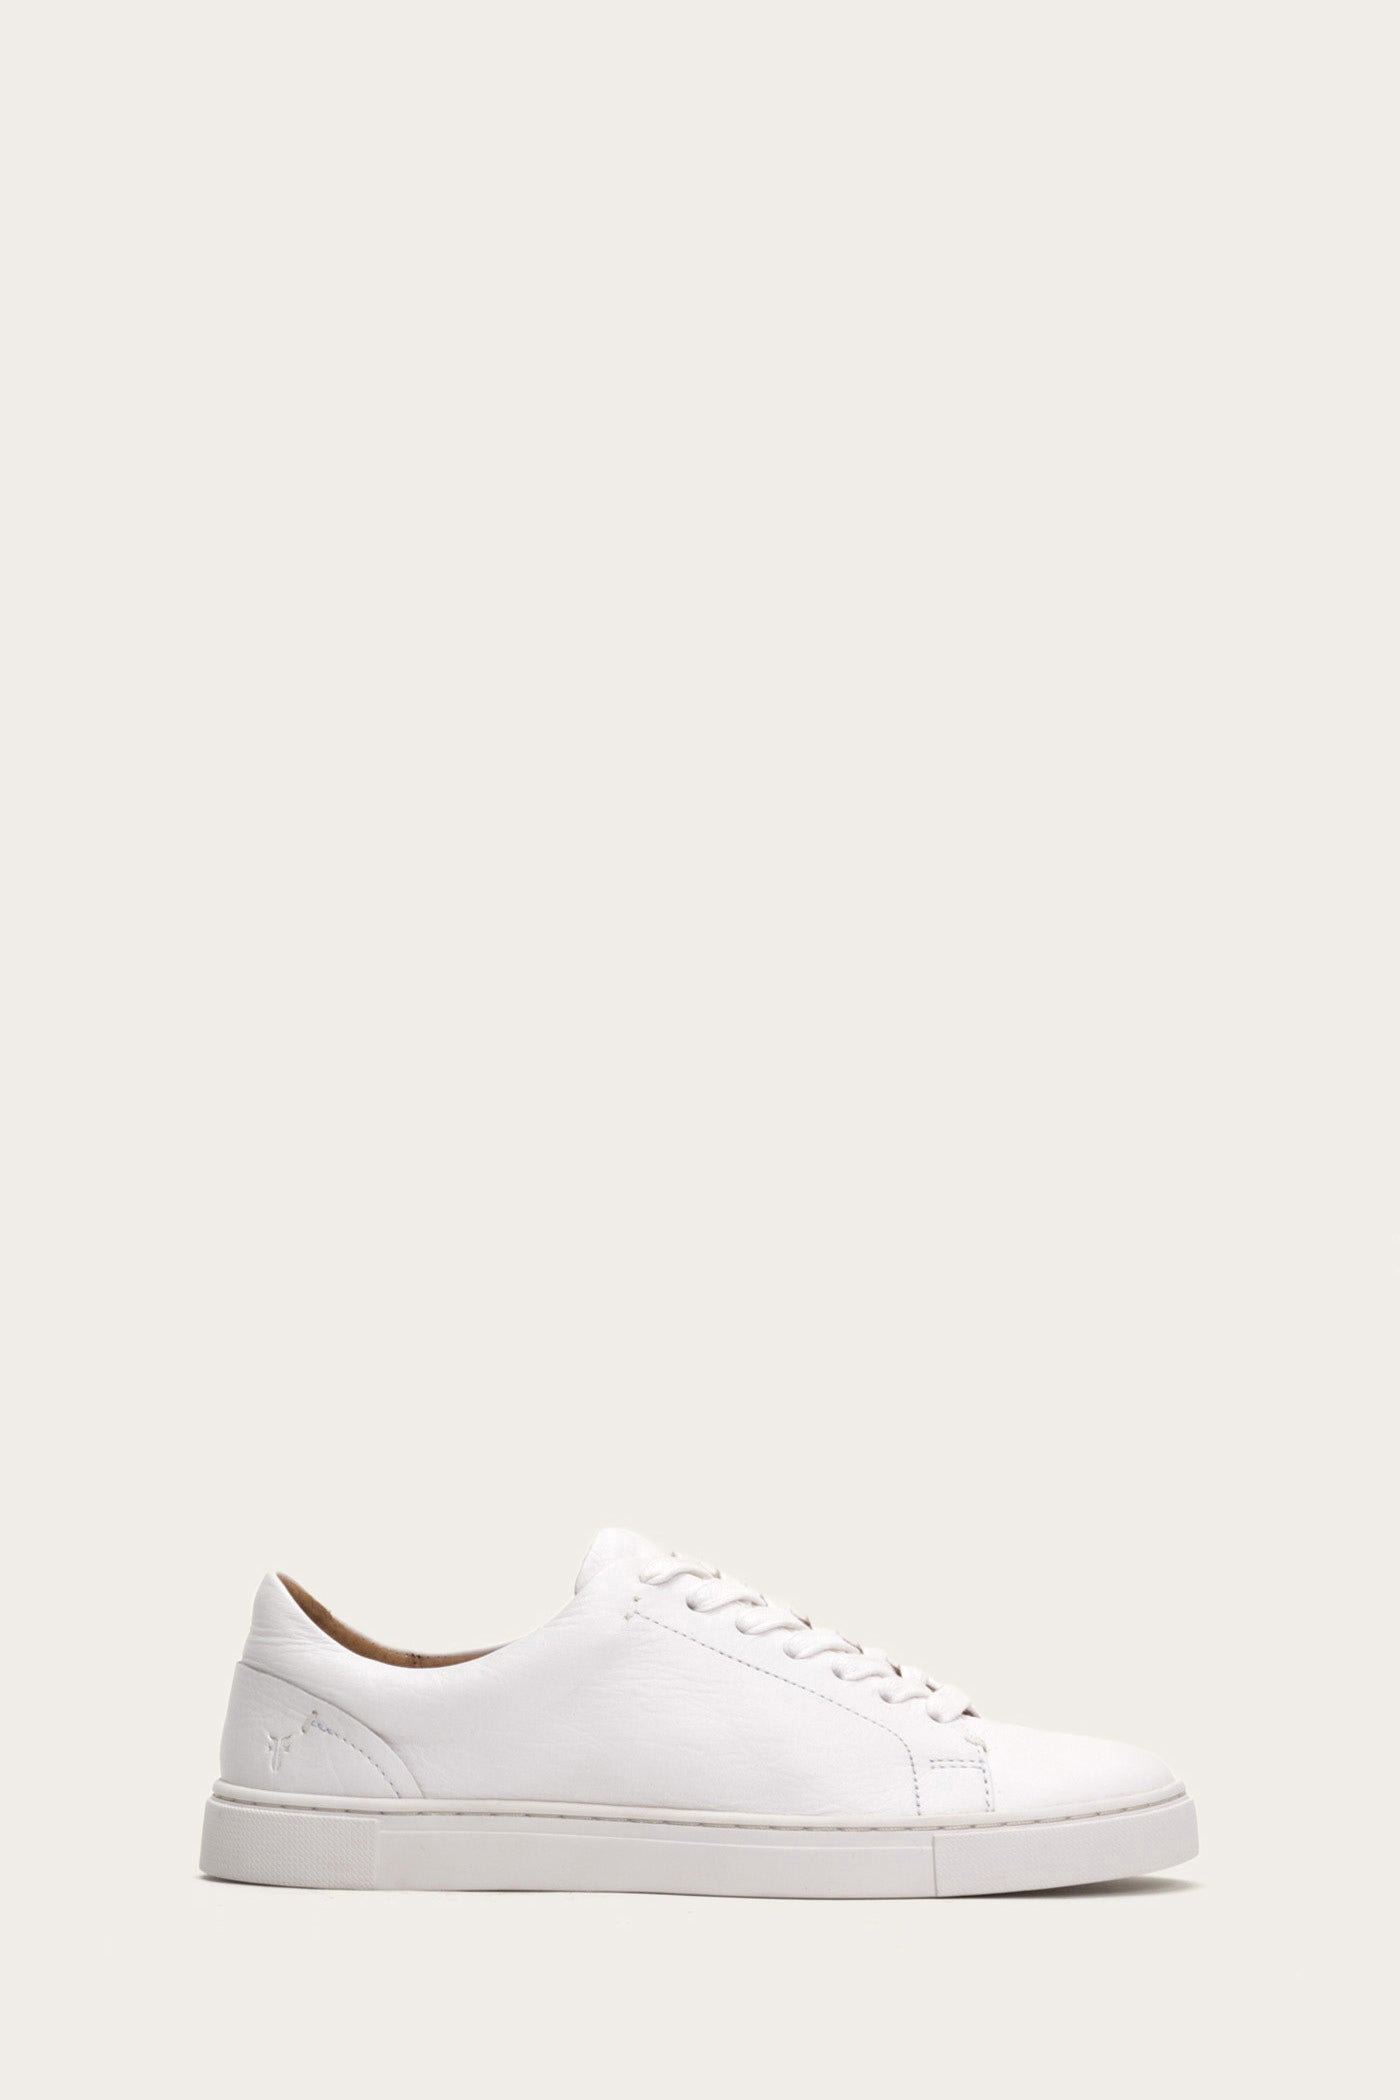 frye boots, sneakers, shoes for men and women since 1863 womens platform white sneakers vegan sneakers where to get a fresh